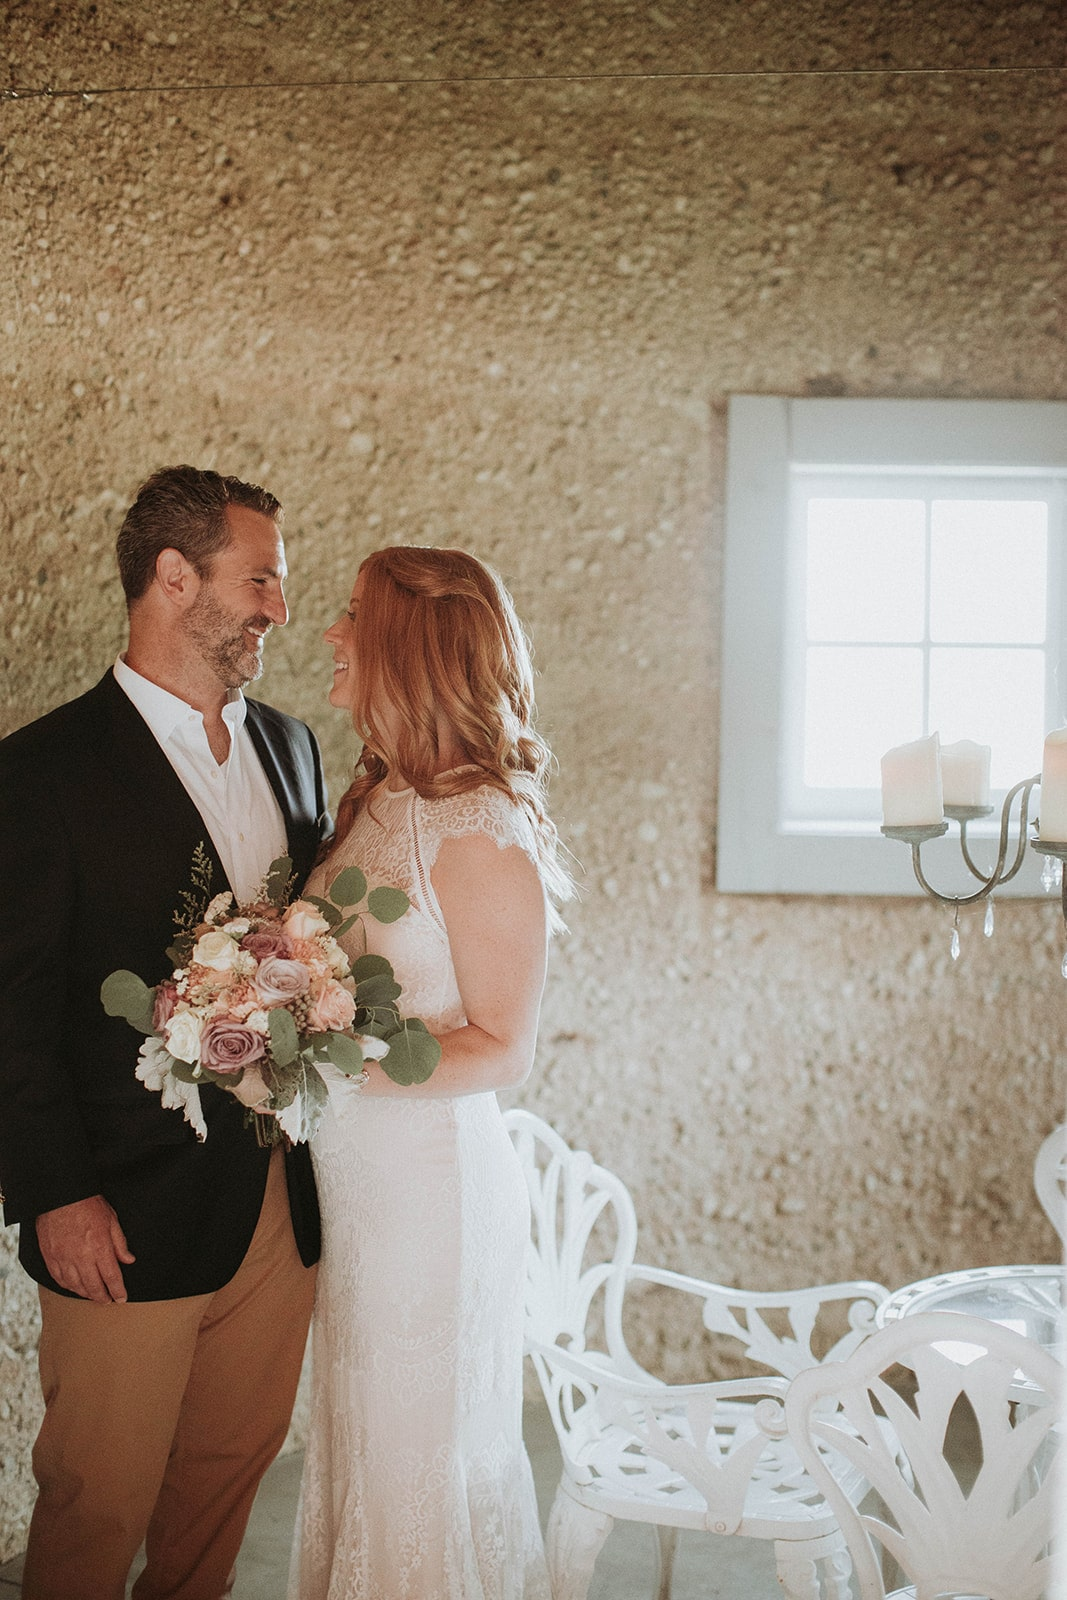 bride-and-groom-share-moment-in-barn-silo-min.jpg